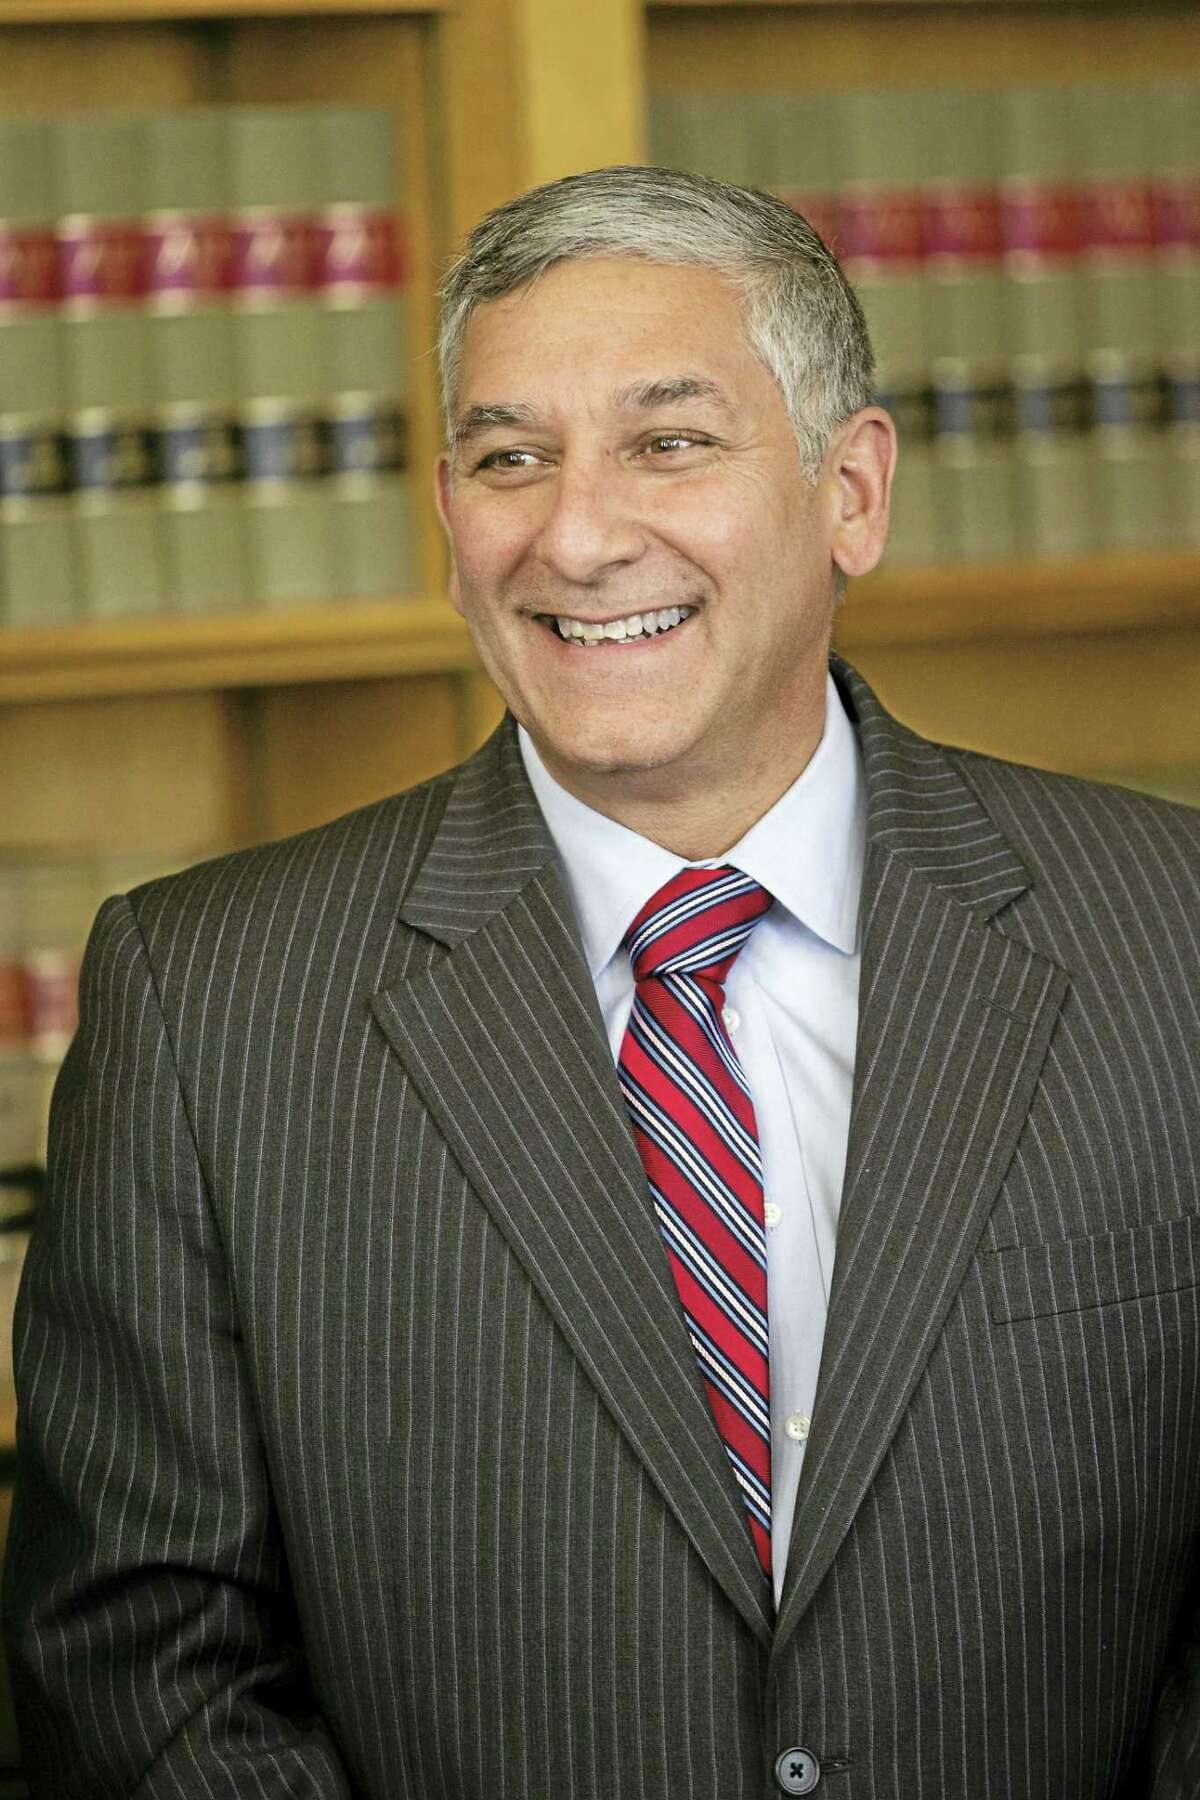 State Senate Minority Leader Len Fasano, R-North Haven, represents the 34th Senatorial District including East Haven, Durham, North Haven and Wallingford.(Contributed)